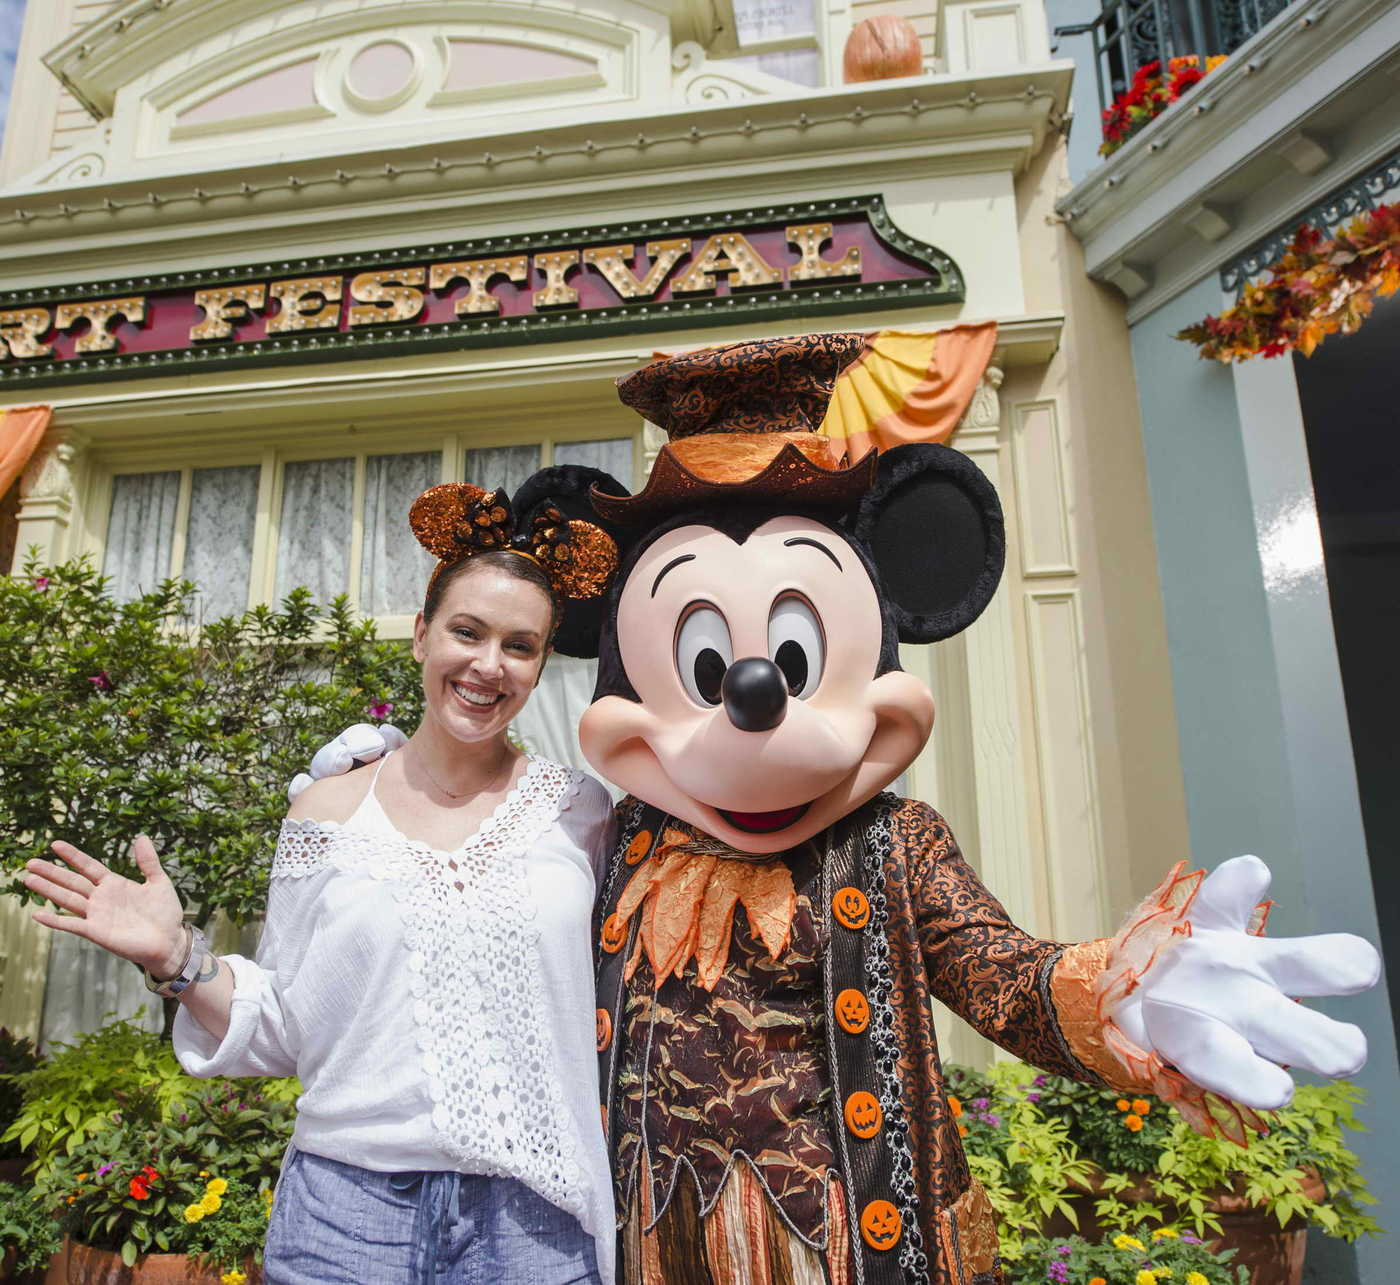 Alyssa Milano Posing With Mickey Mouse at Magic Kingdom Park in Lake Buena Vista 08/29/2017